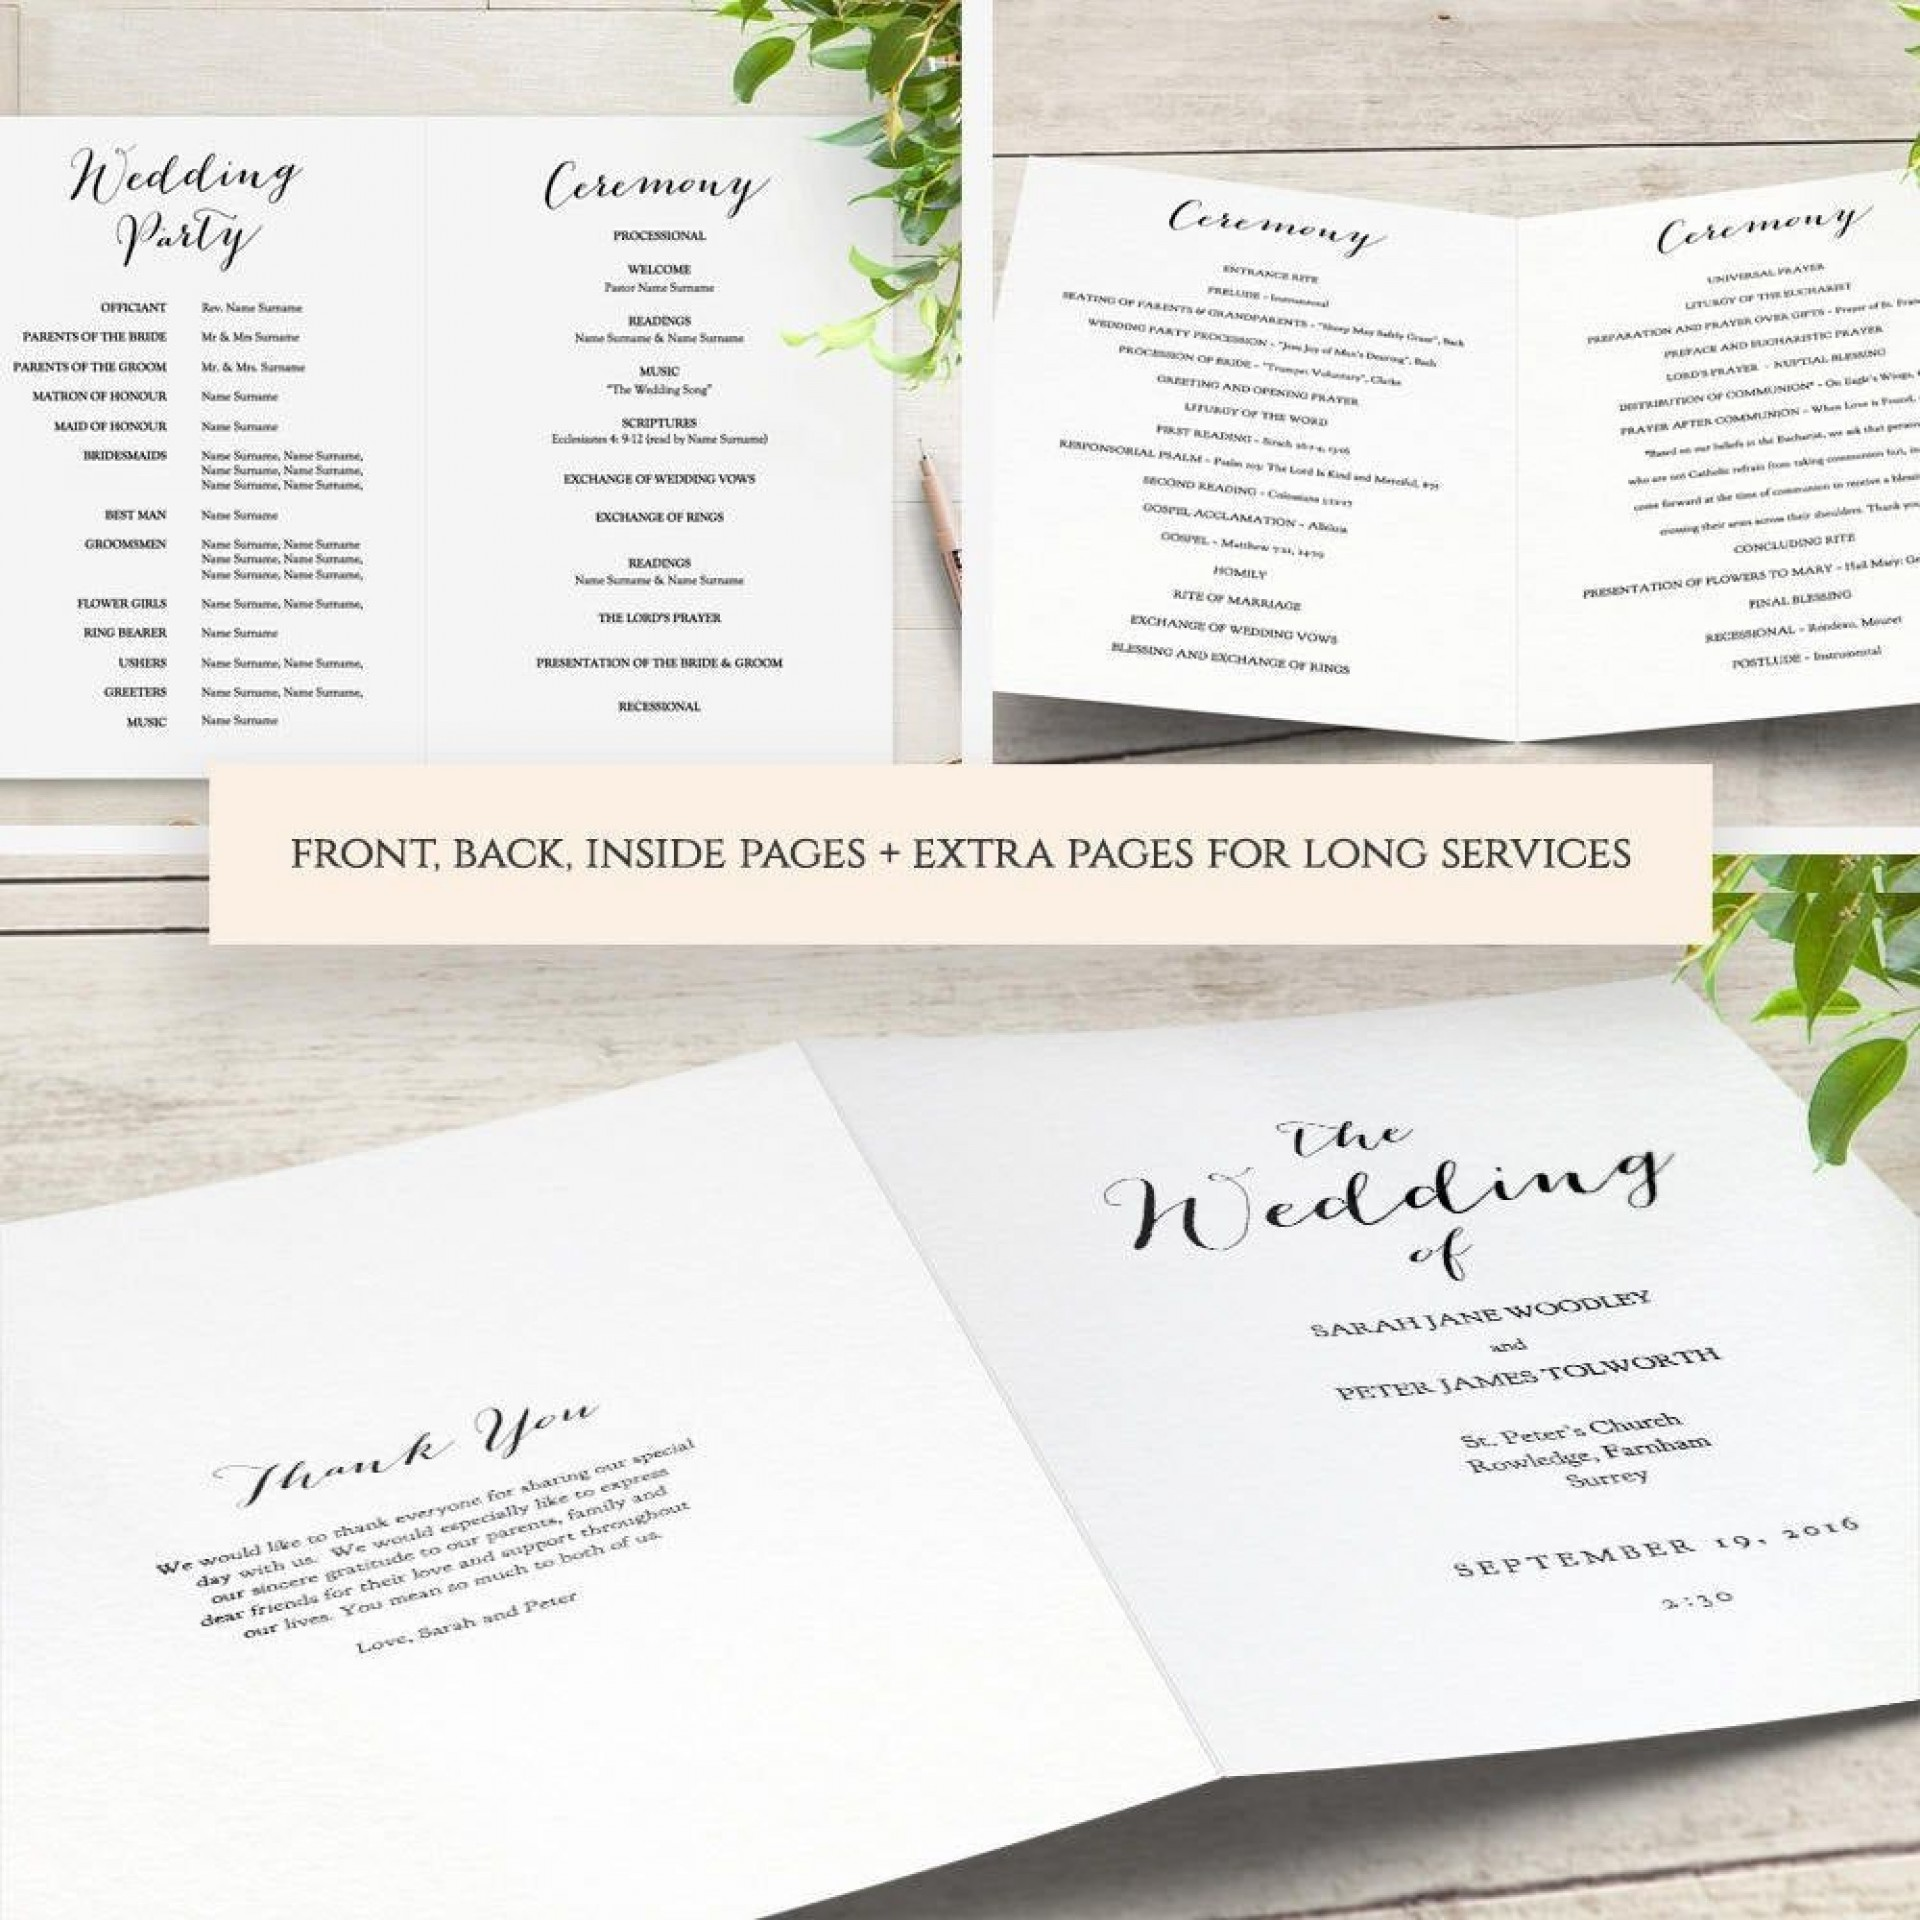 002 Outstanding Wedding Order Of Service Template Word Sample  Free Microsoft1920